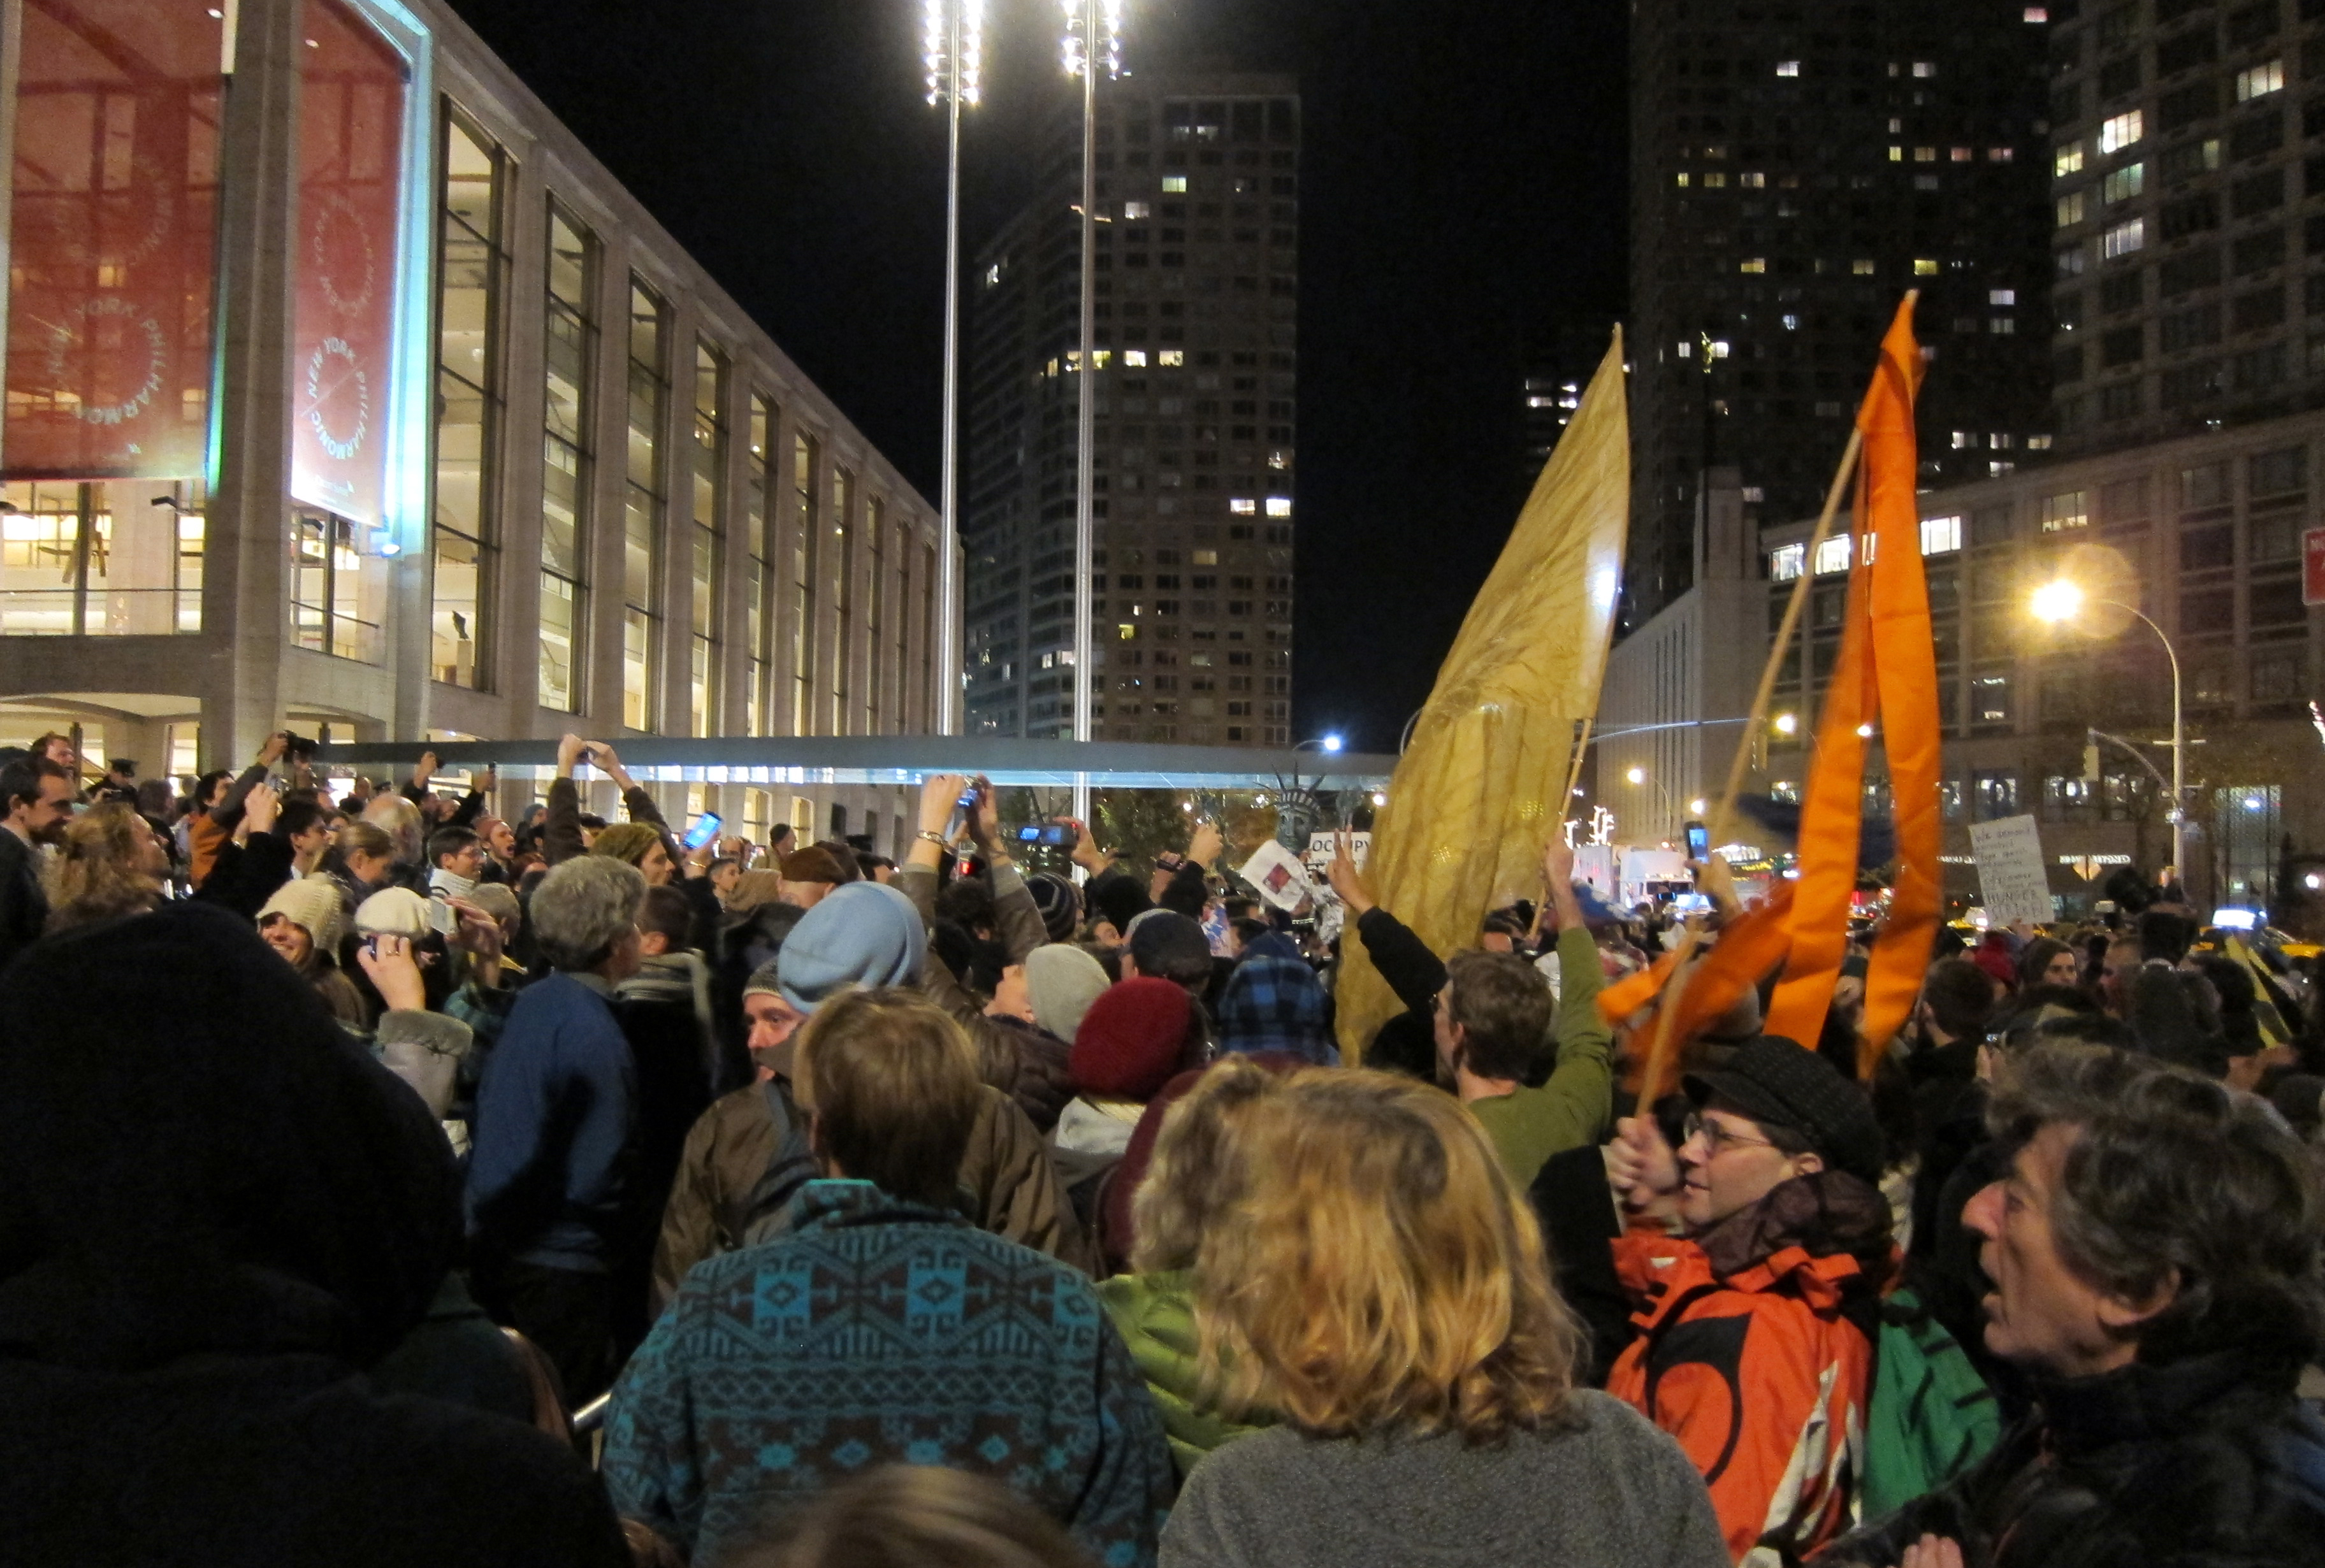 Occupy Wall Street protesters gathered outside on Lincoln Center Plaza